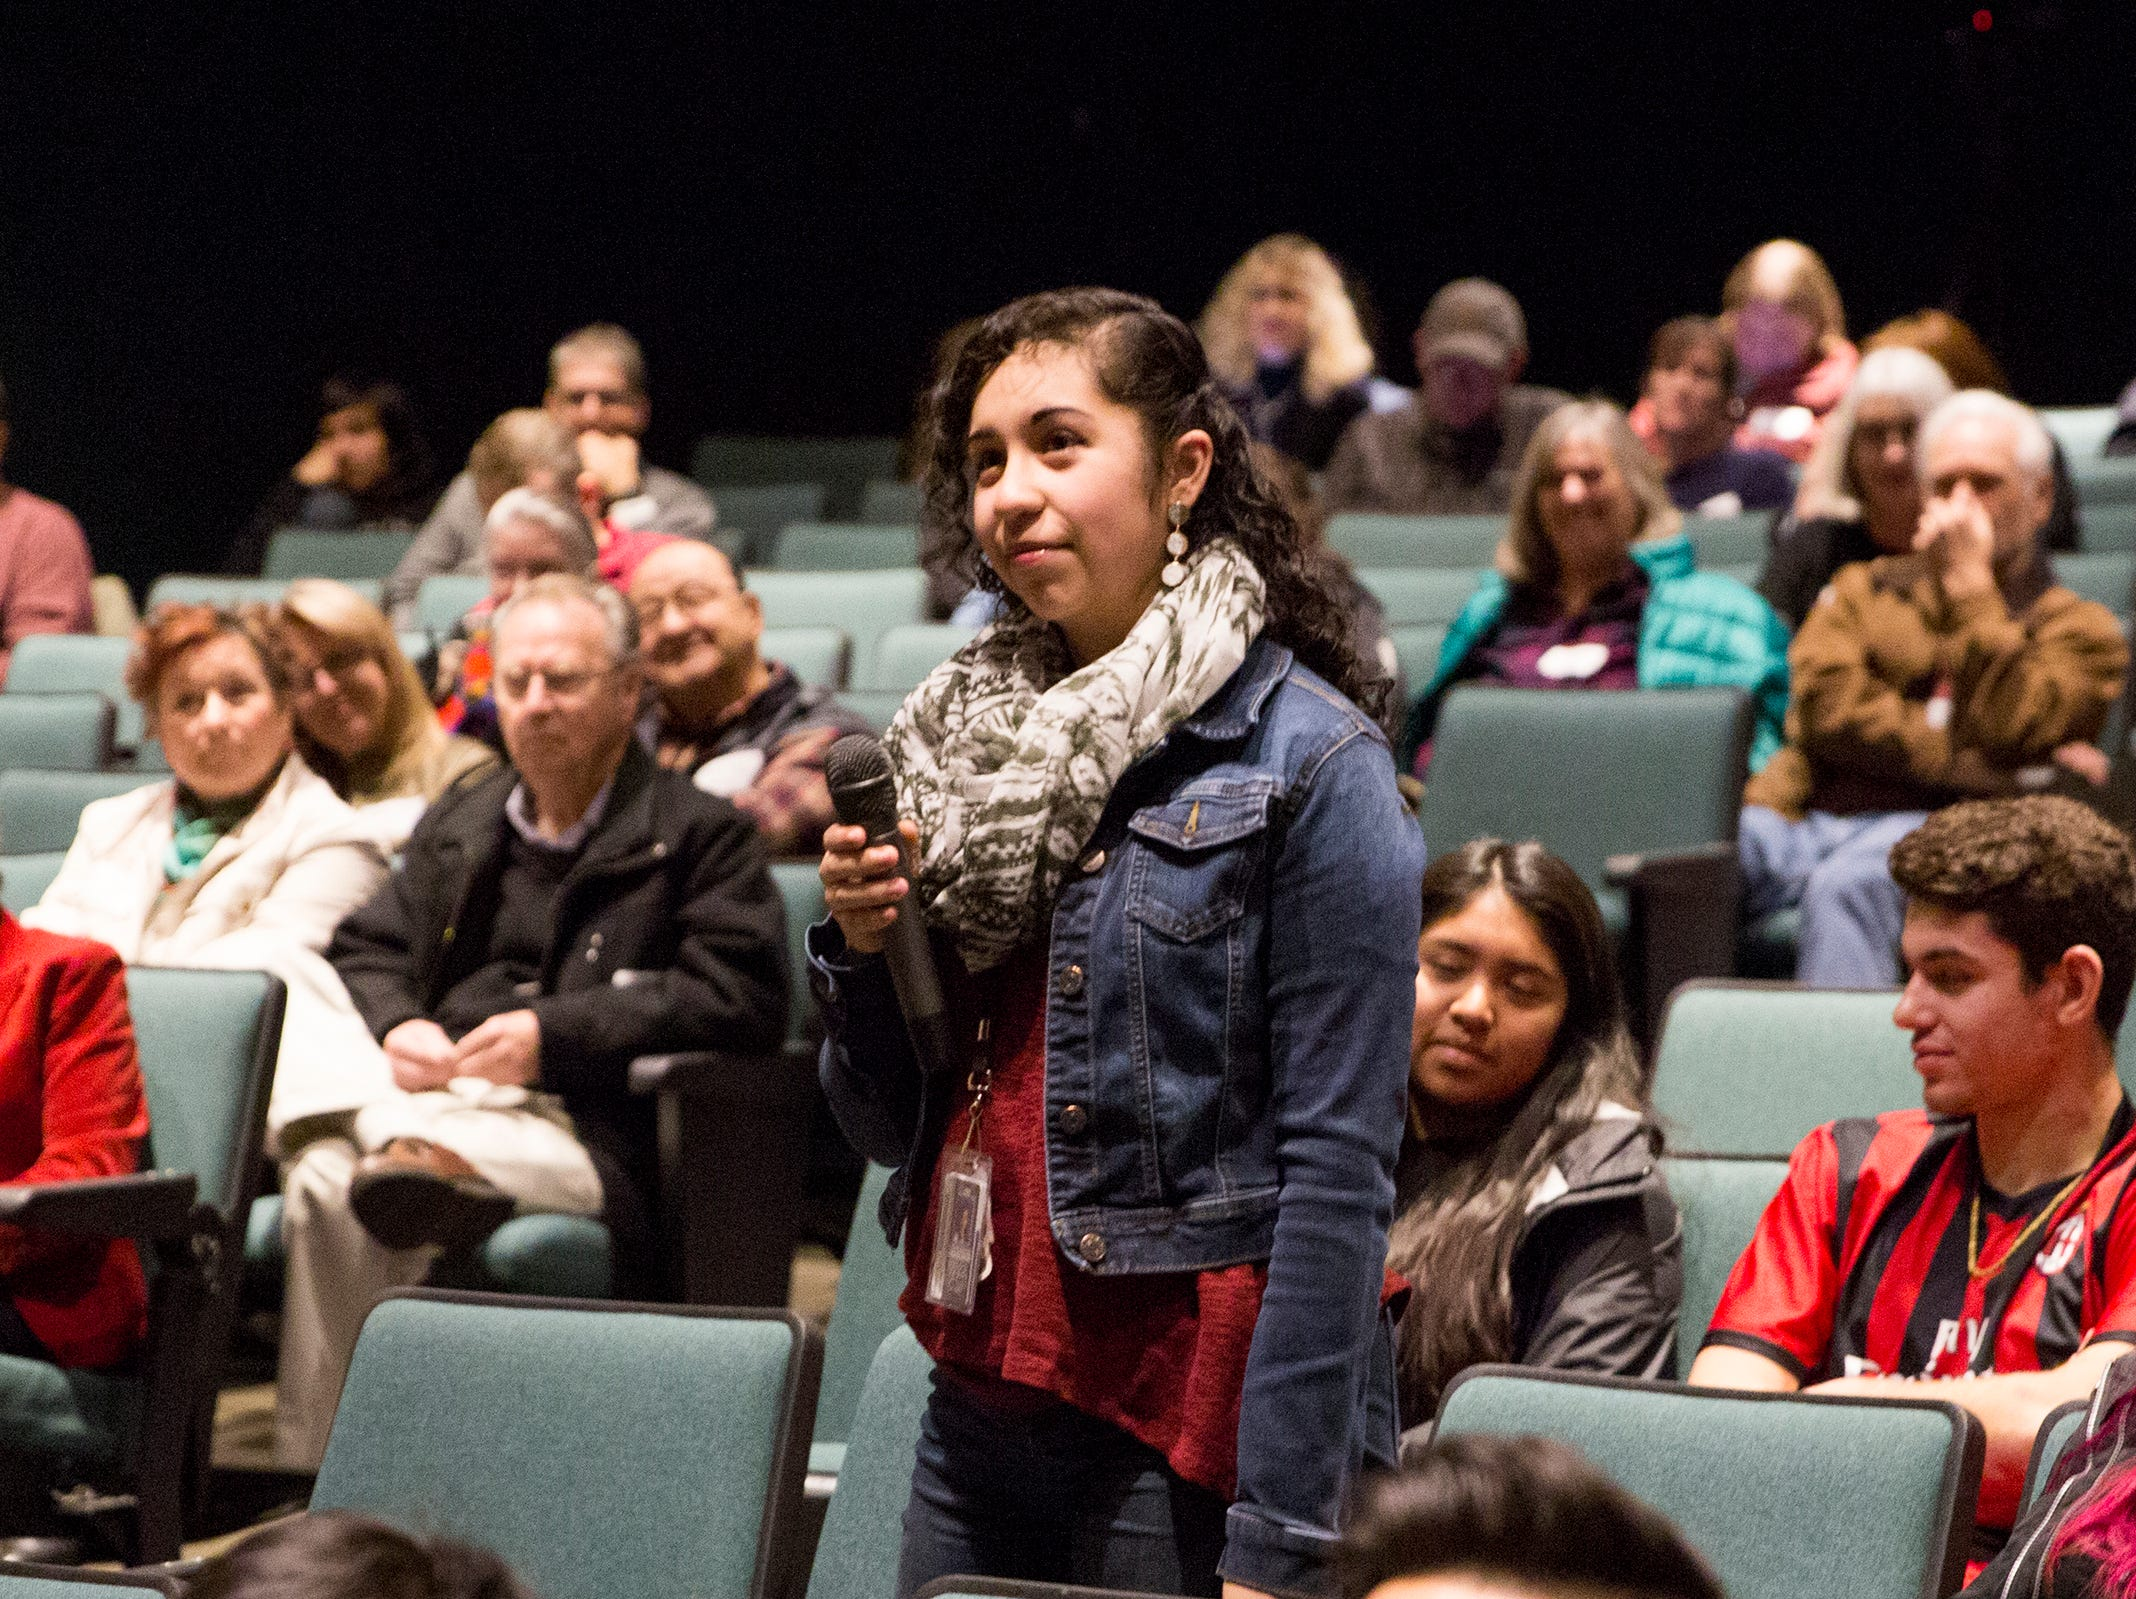 Sophomore Brenda Martinez (center) waits to hear Sen. Ron Wyden answer her question at a Marion County town hall at Woodburn High School on Monday, Jan. 7, 2019.